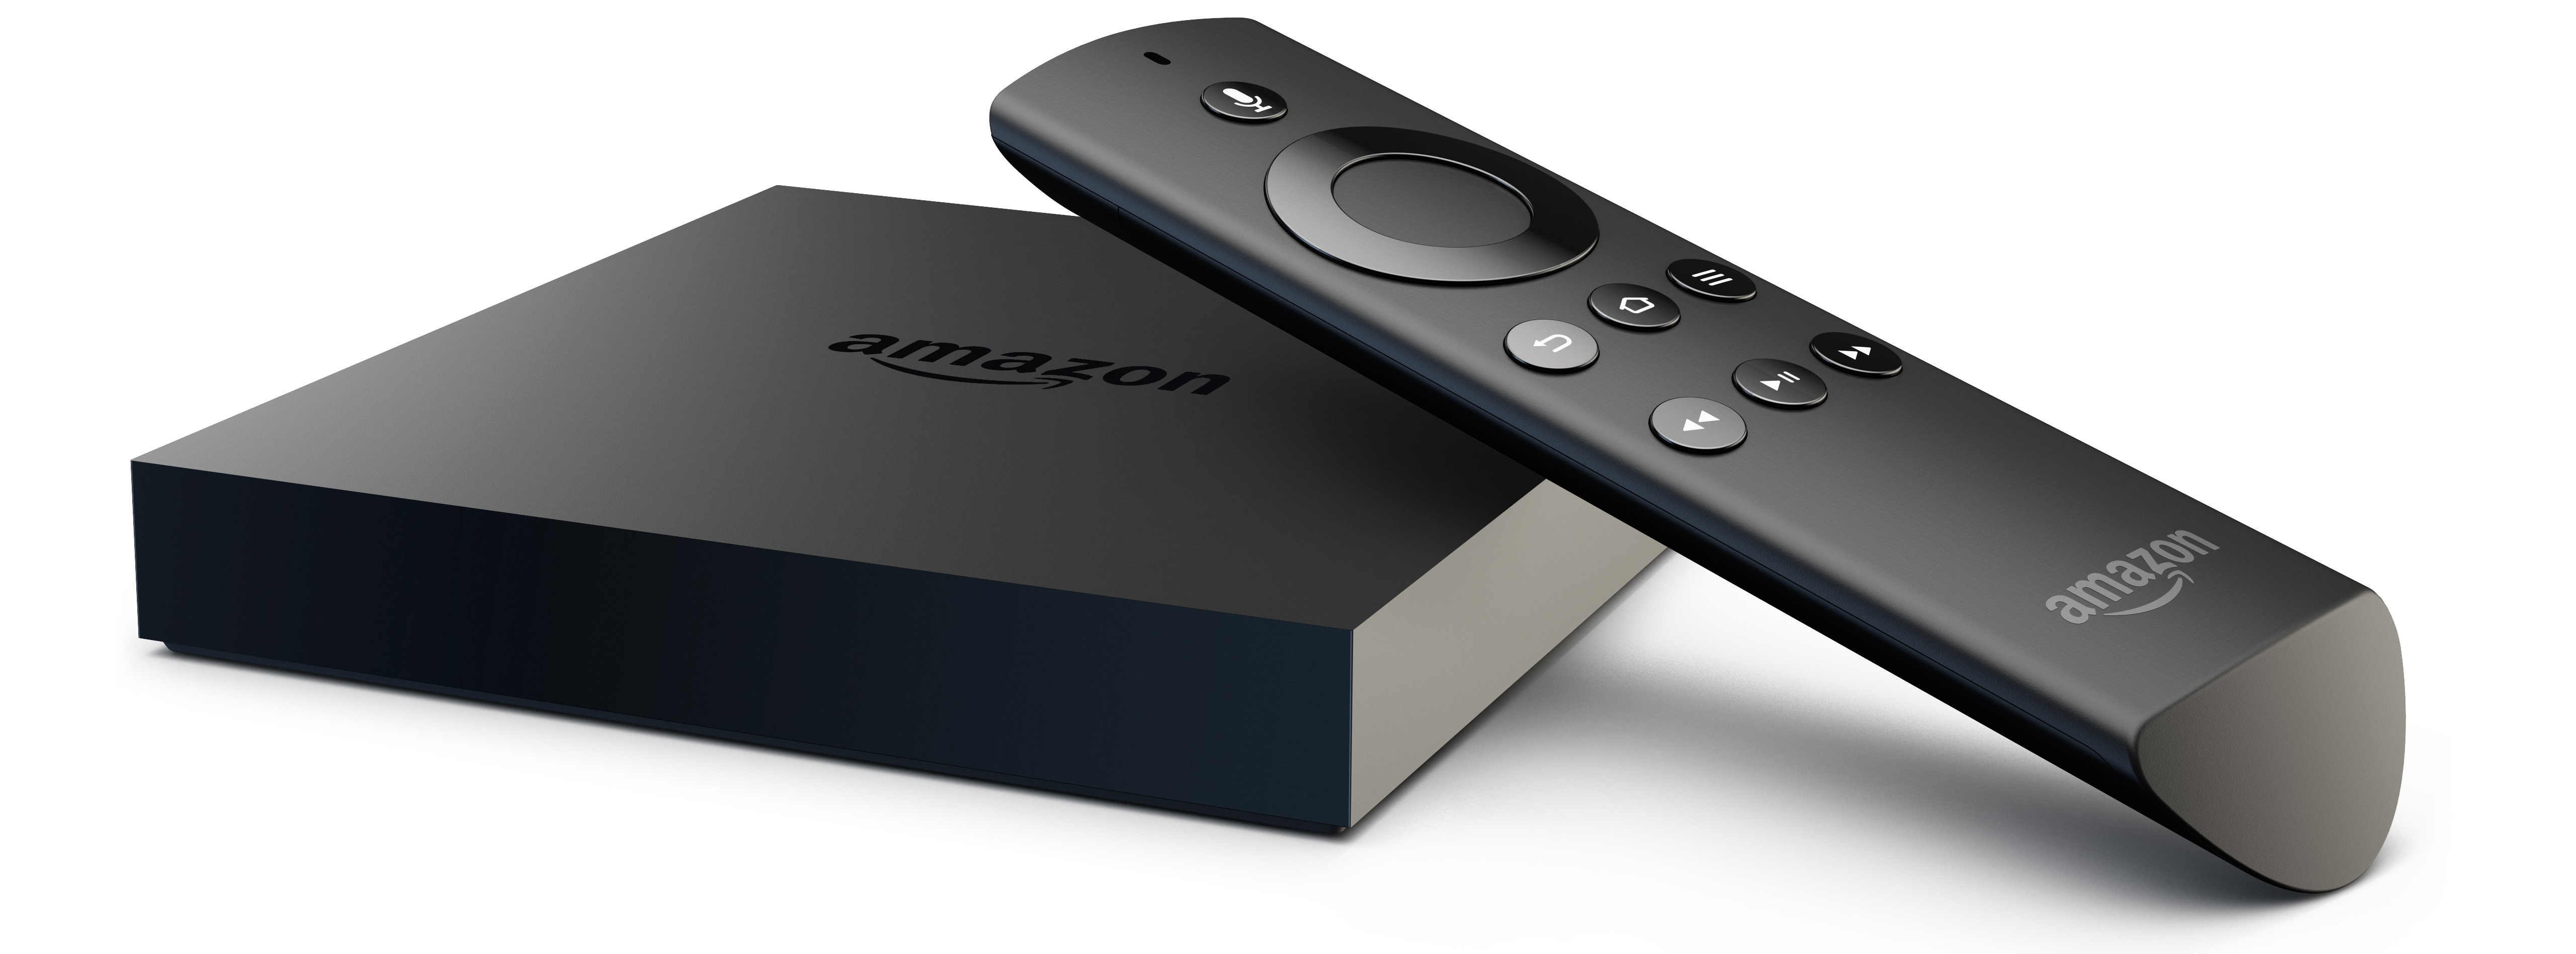 Amazon Brings A New Outlook To Its Fire TV And Provides A More User Friendly And Cinematic ...